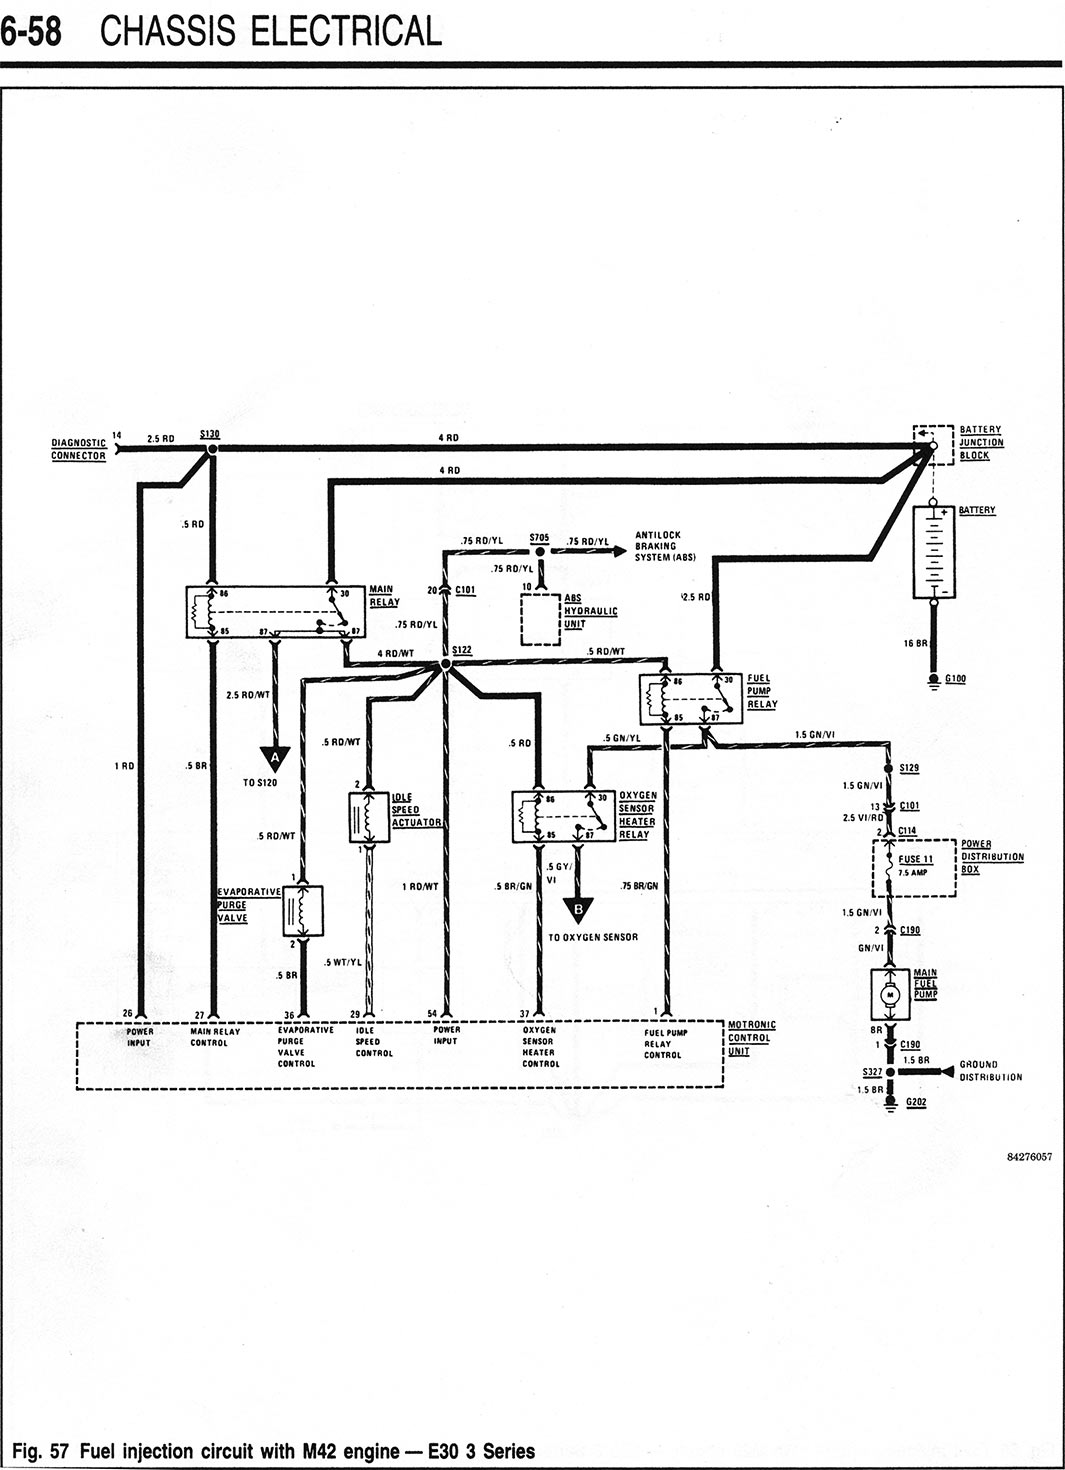 hight resolution of 1995 bmw 318i wiring diagram wiring diagram load bmw 318i engine bay diagram bmw 318ti engine diagram